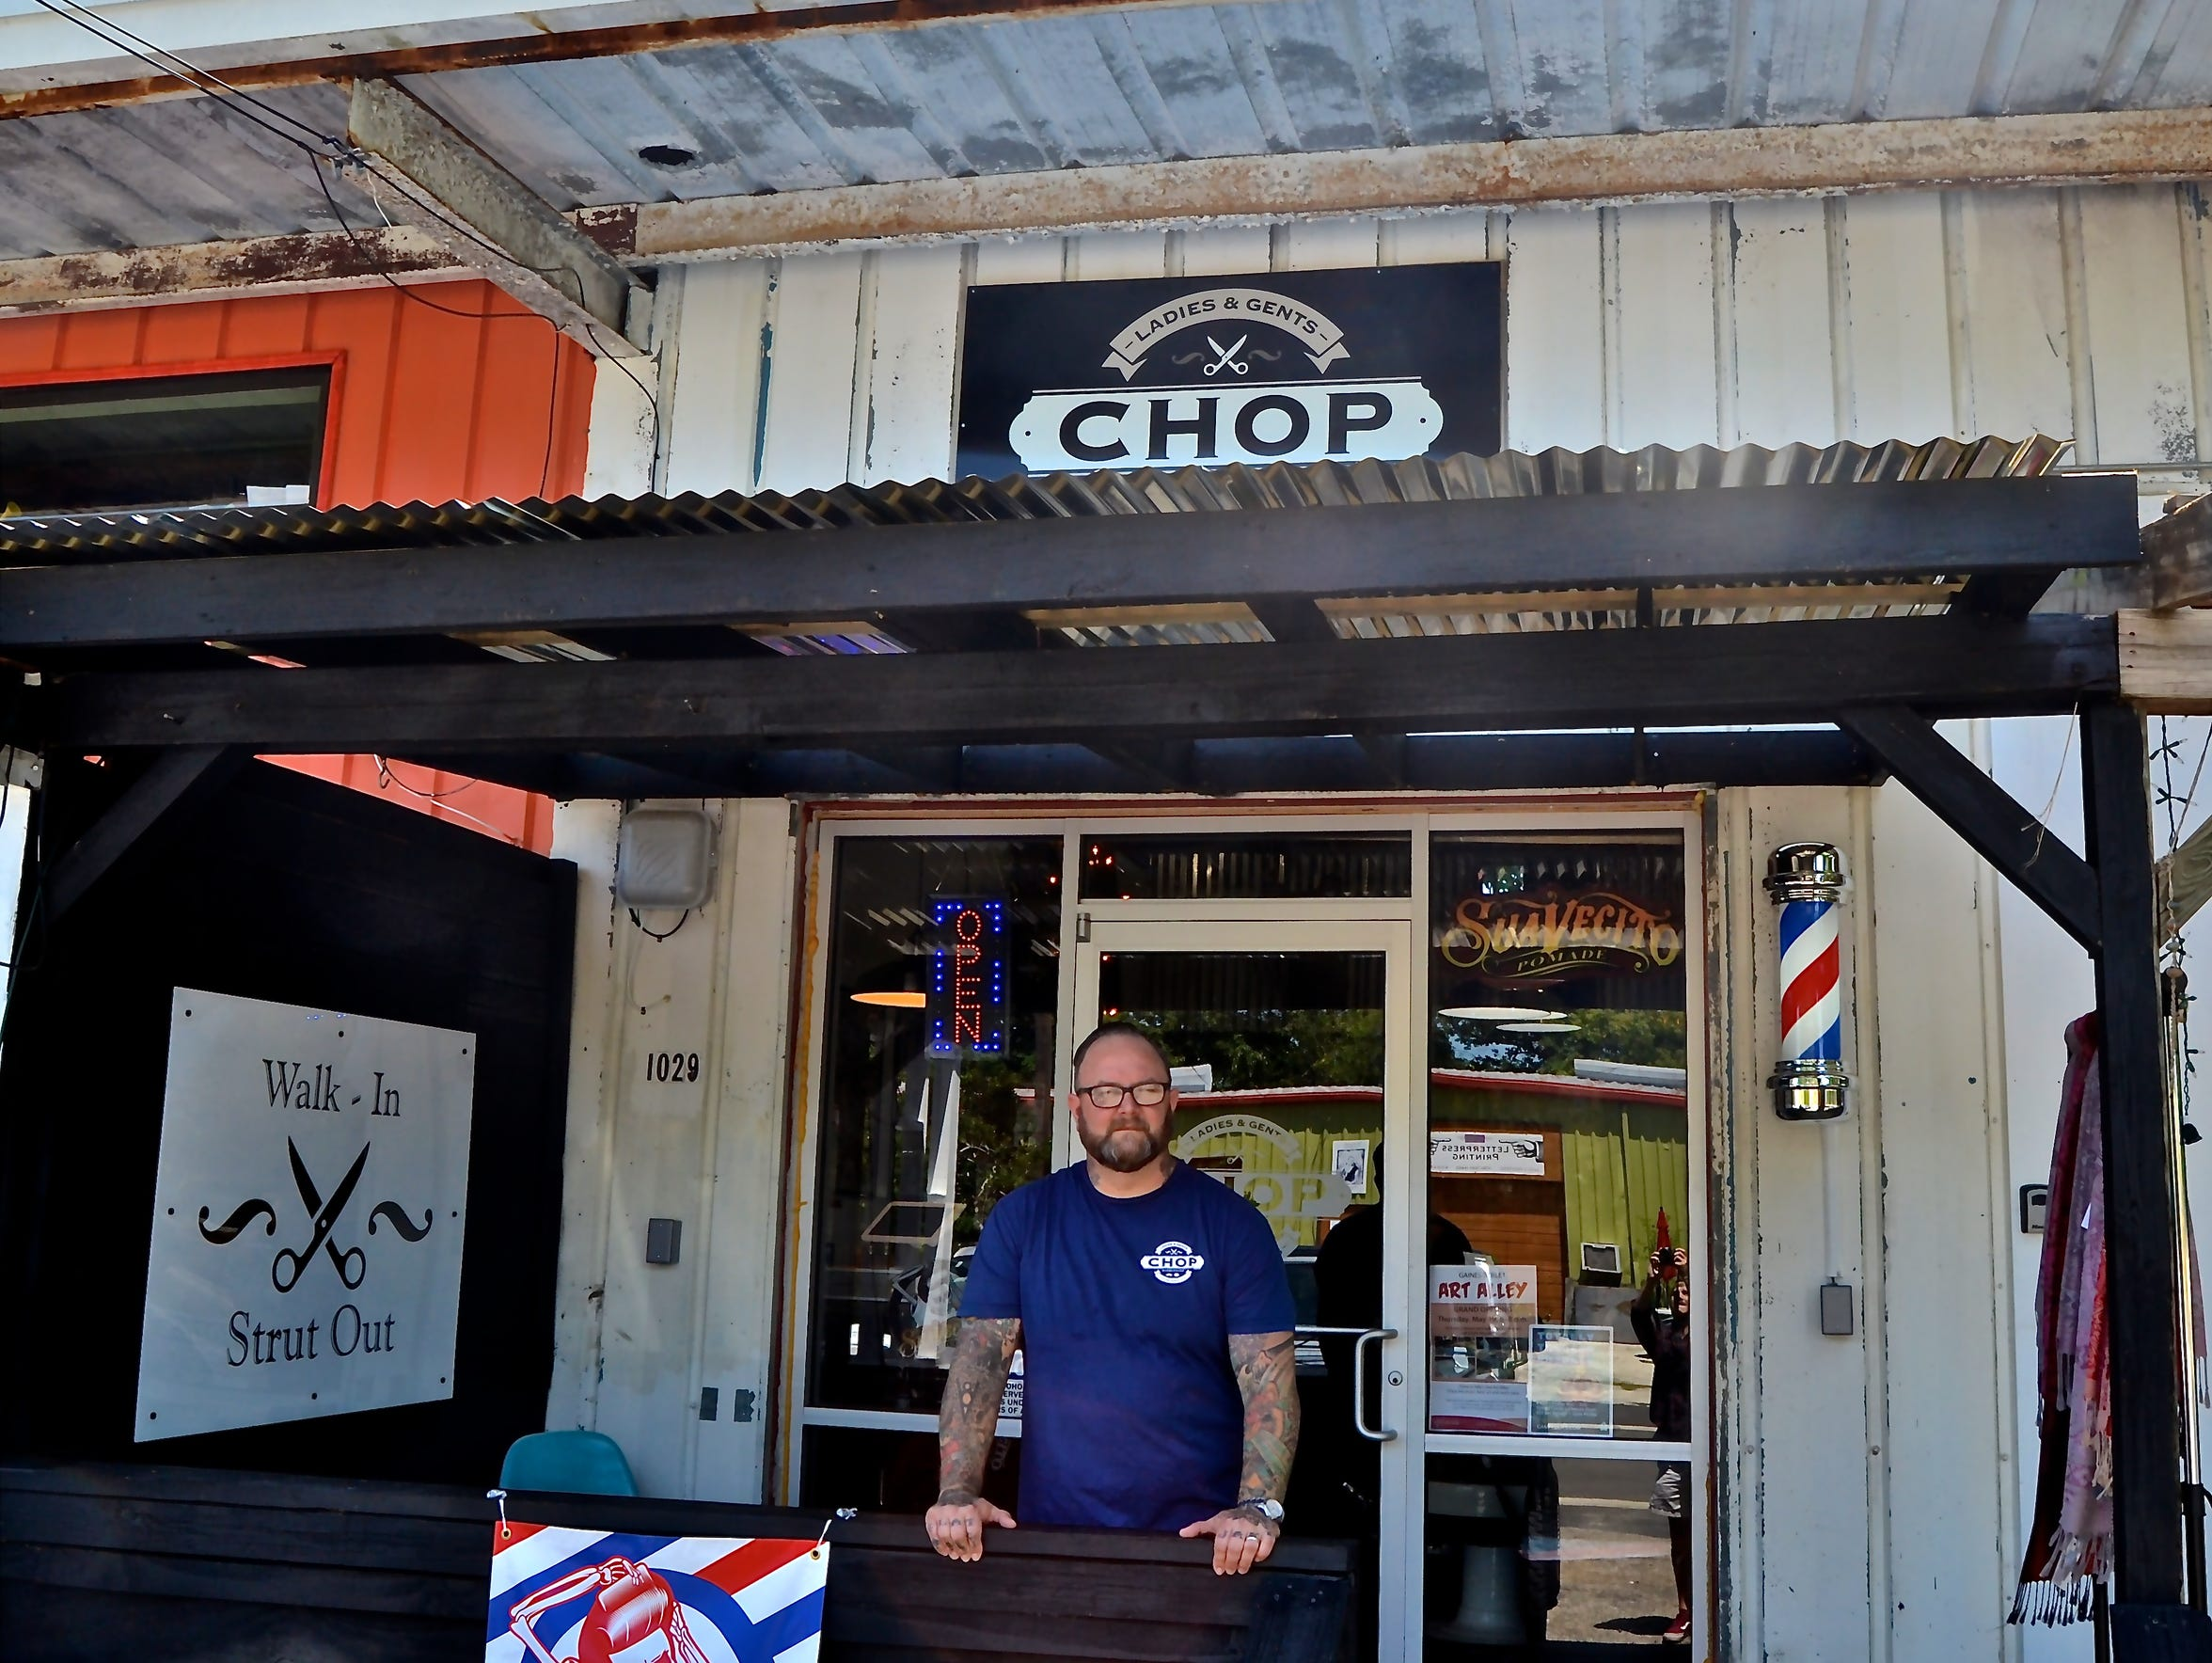 Danny Rainey, co-owner of The Chop Barbershop, stands